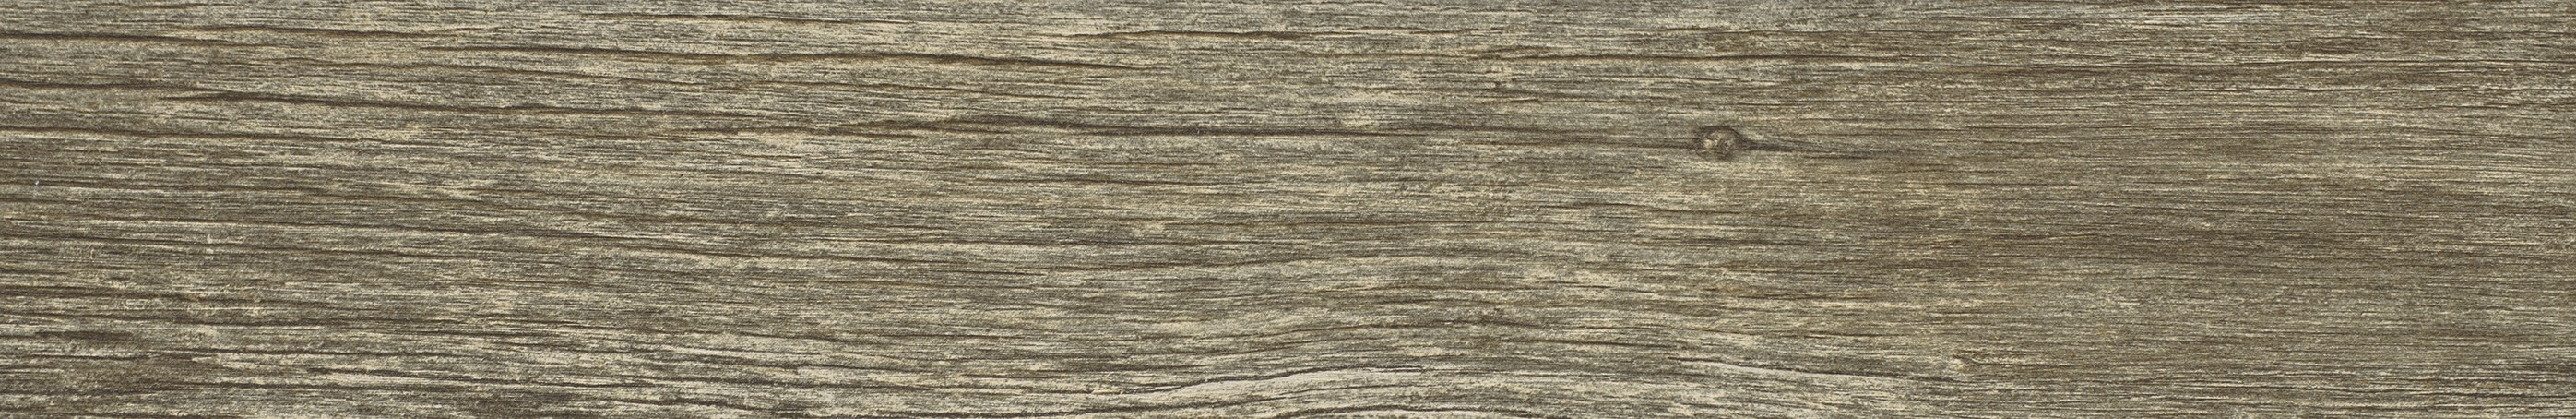 FORESTA Brown struktura 160x985 2